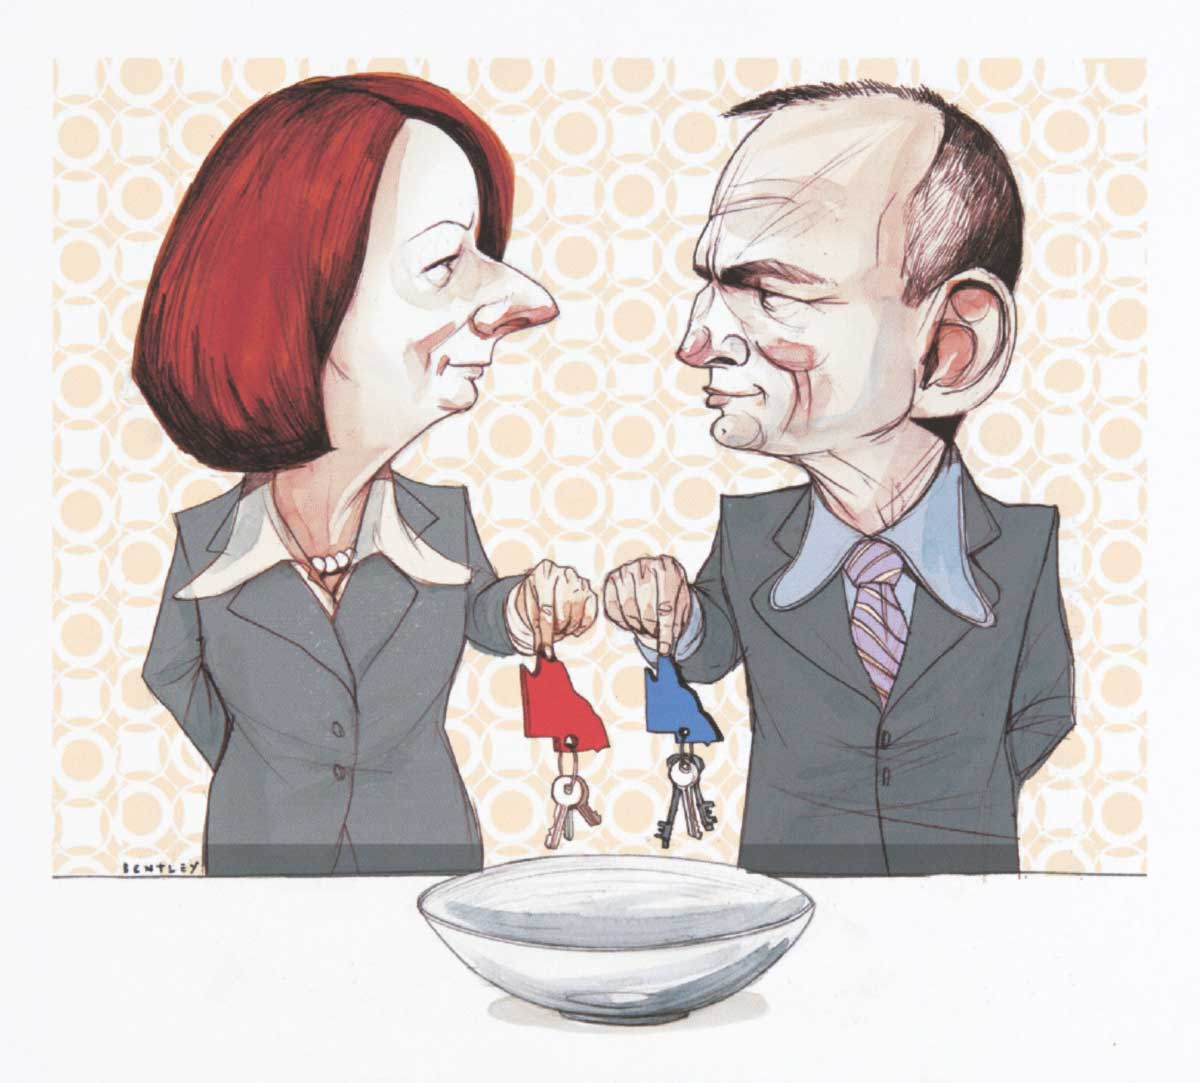 A colour cartoon depicting Julia Gillard and Tony Abbott standing at a table. On the table is a bowl. Both hold a set of keys above the bowl; both sets have a key tag in the shape of Queensland. Gillard's tag is red, while Abbott's tag is blue. They look at each other as they hold the keys over the bowl. In the background is a wall with patterned wallpaper on it. The pattern is reminiscent of the 1970s. - click to view larger image